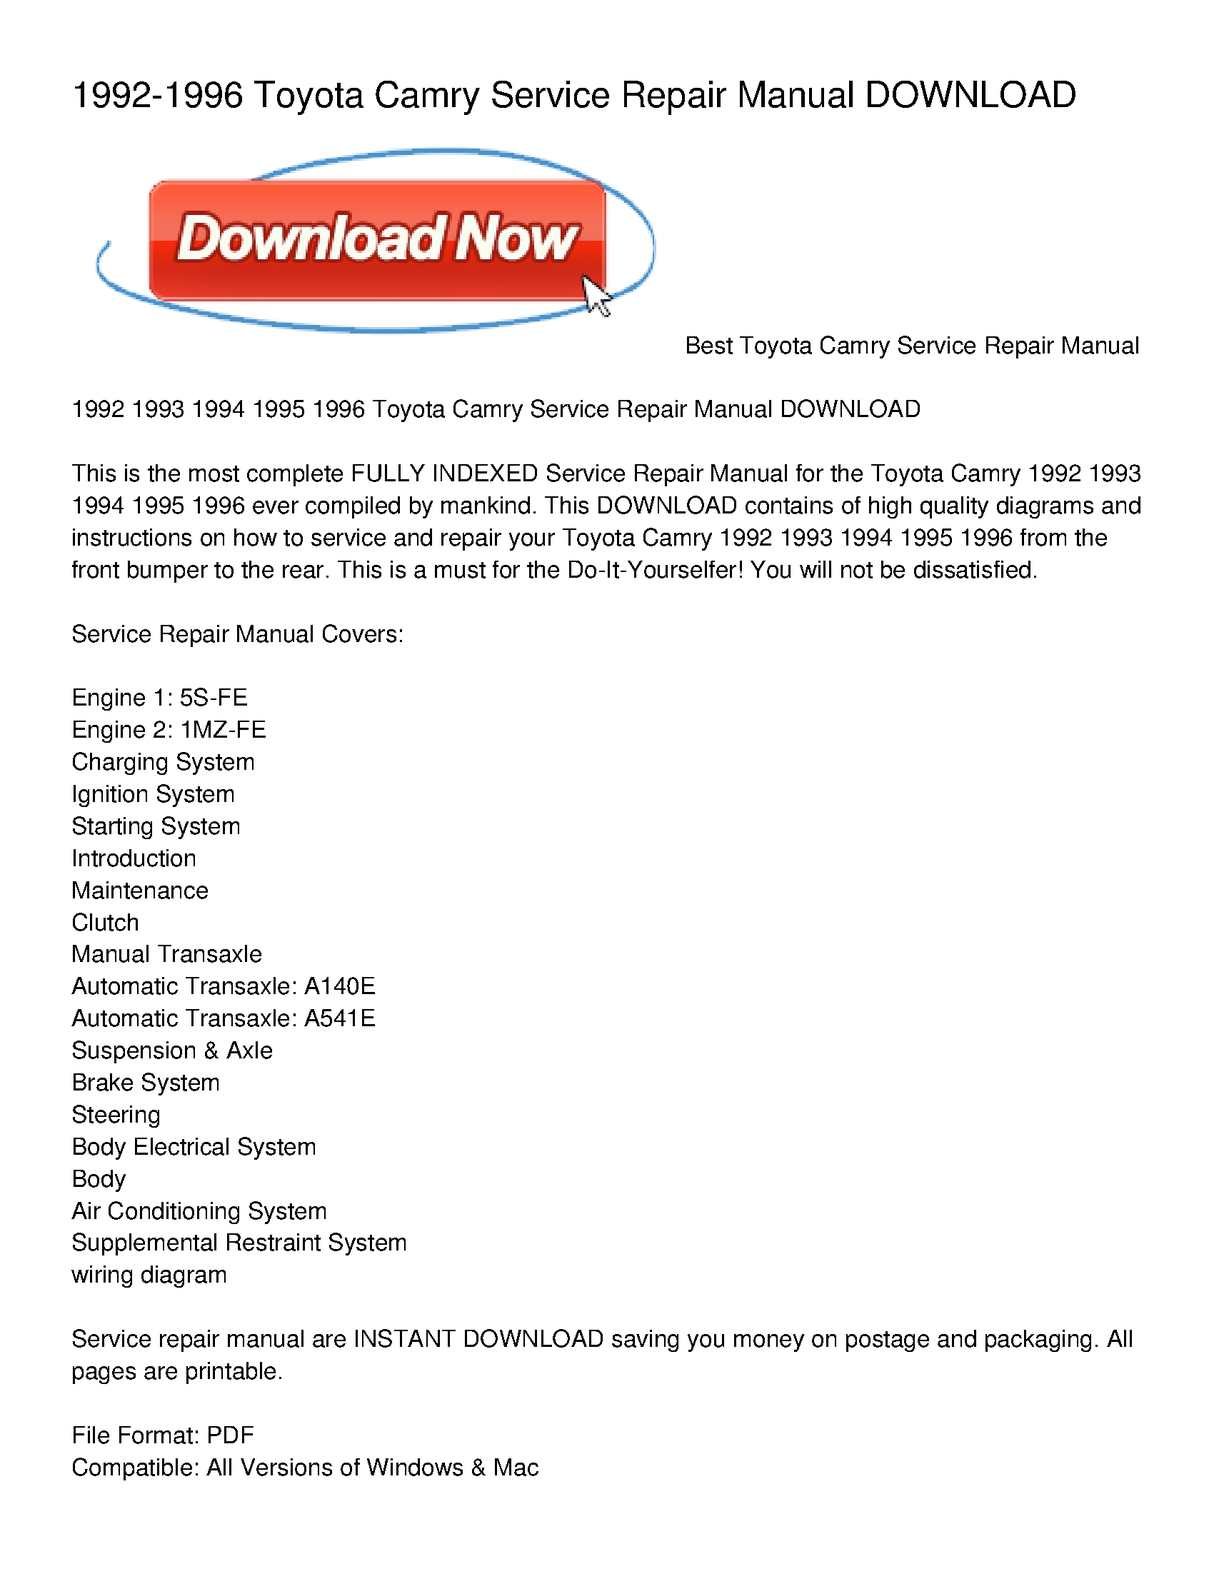 calaméo 1992 1996 toyota camry service repair manual